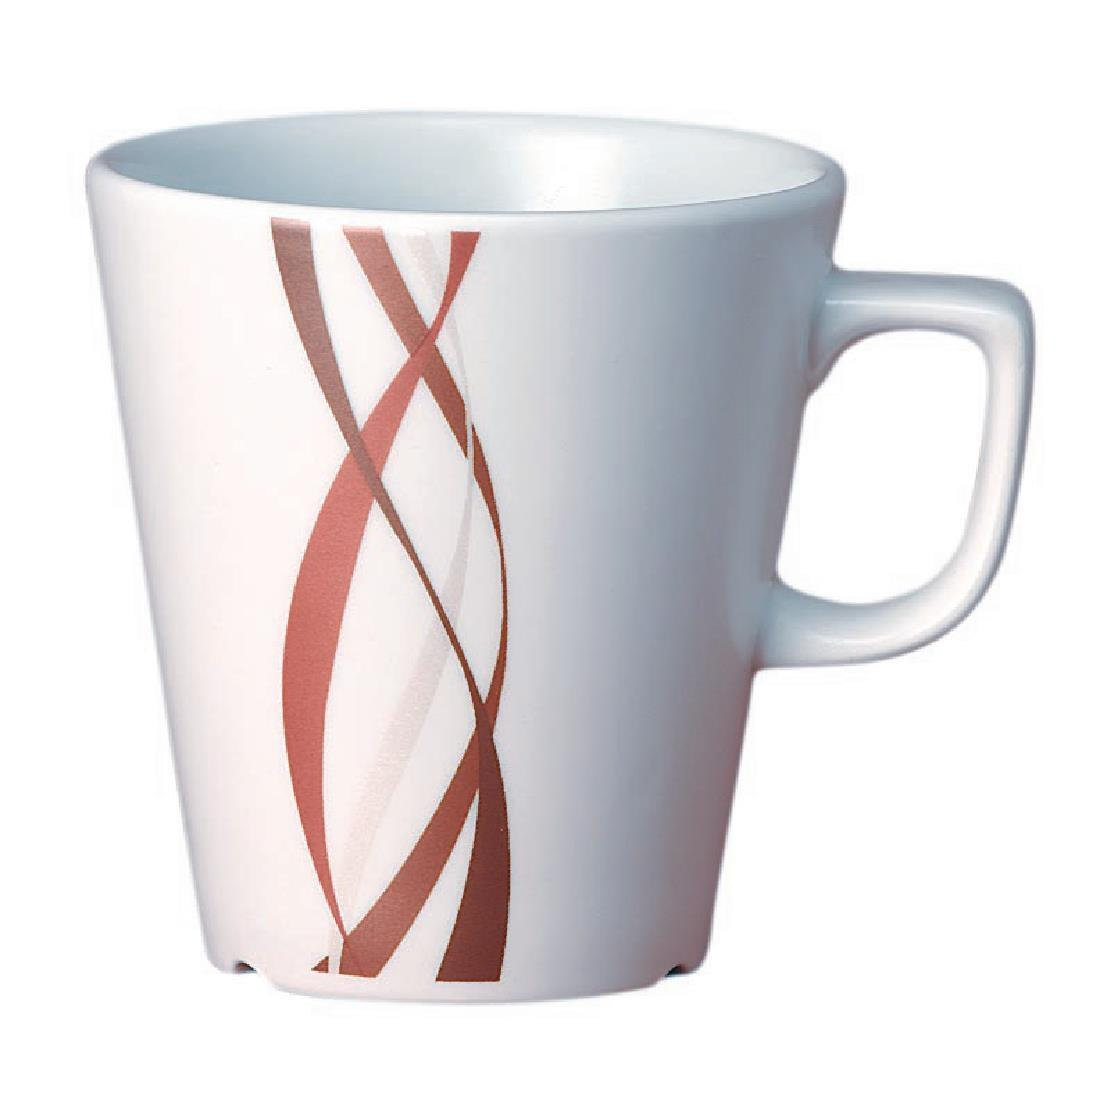 W537 - Helix Cafe Latte Mug